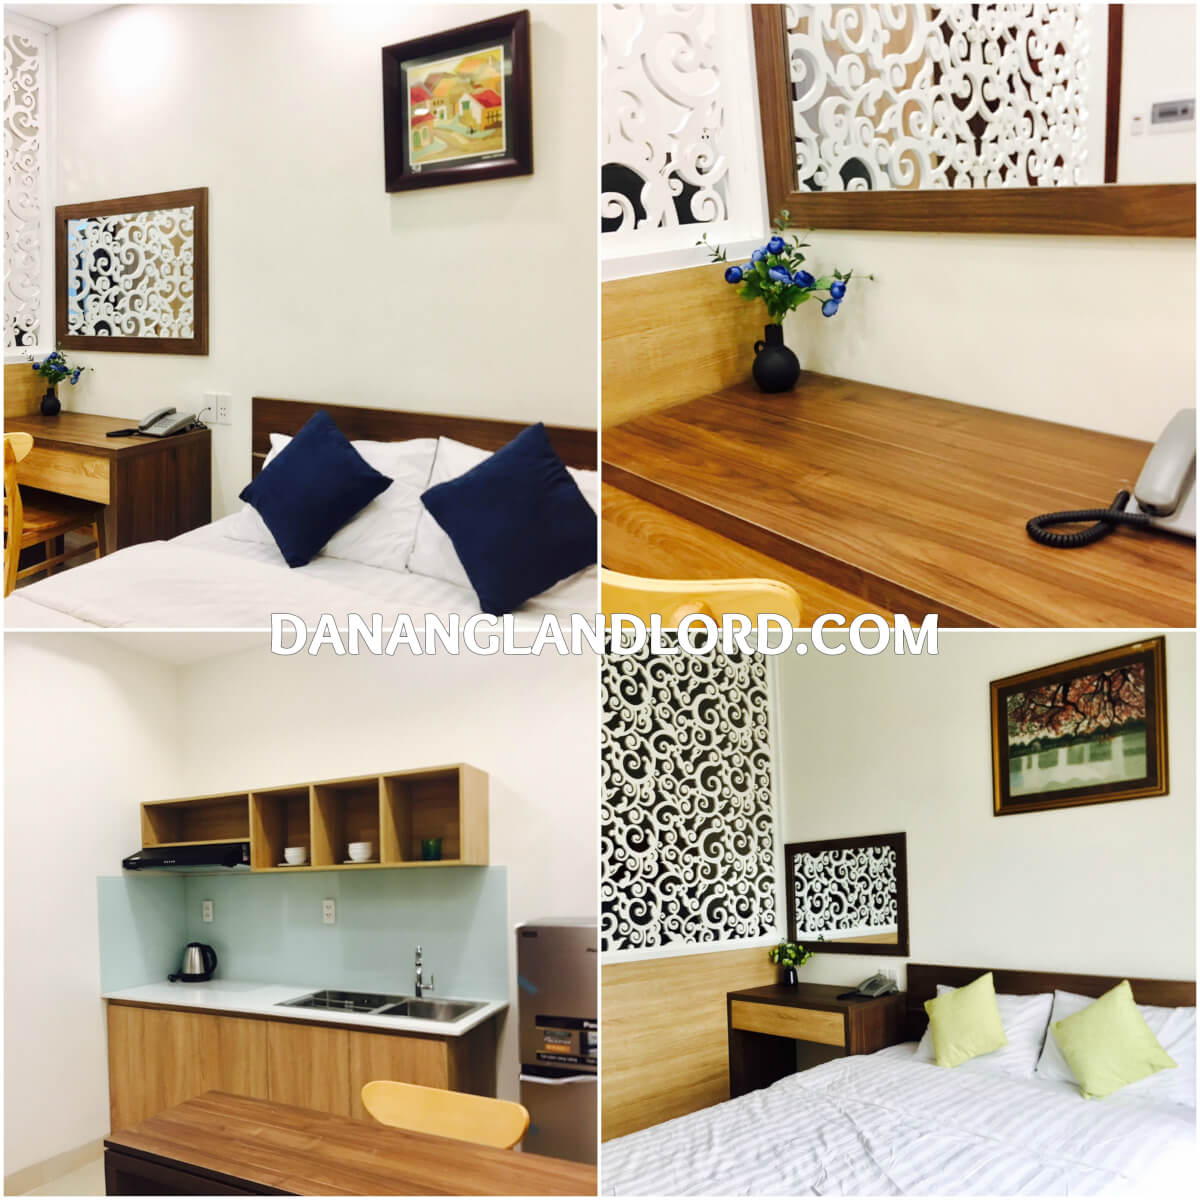 1 Bedroom Apartment For Rent: Studio 1 Bedroom Apartment For Rent, Pham Van Dong Beach